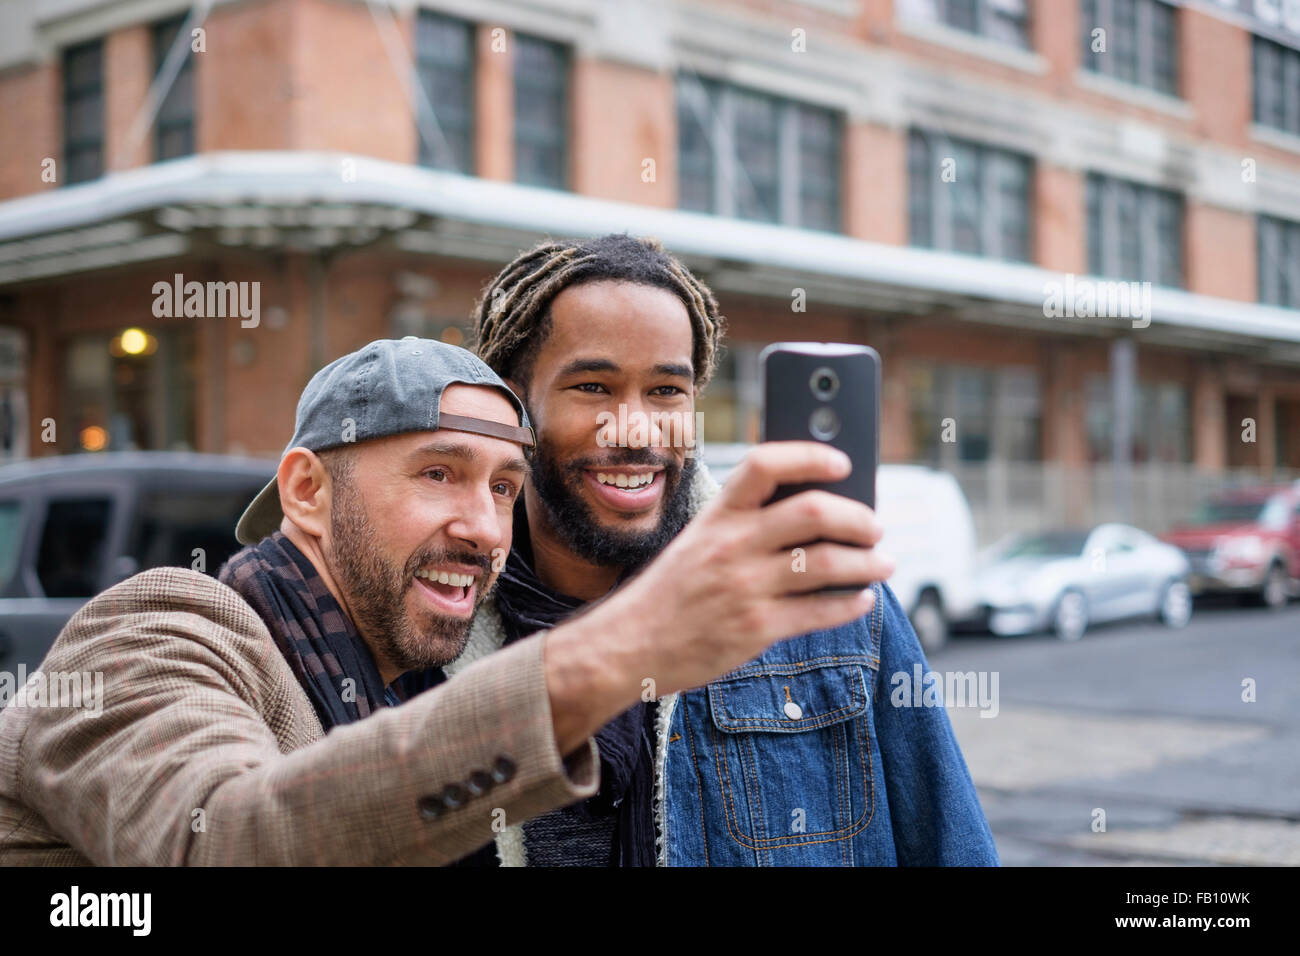 Smiley homosexual couple taking selfie with smart phone in street Stock Photo